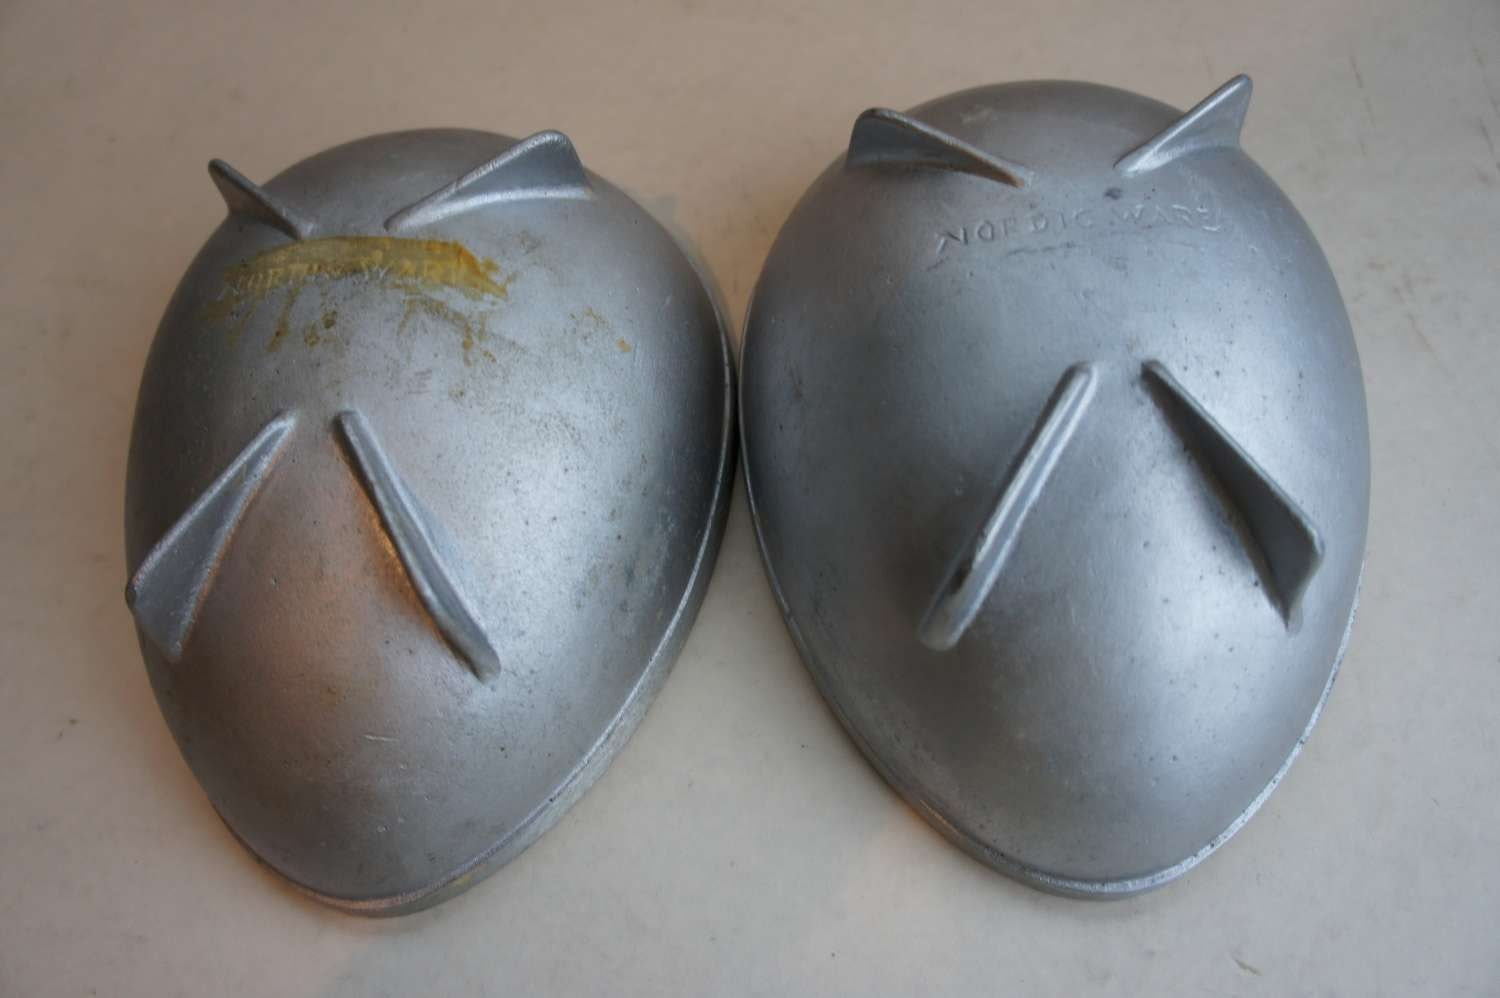 Industrial Vintage Cake Pans By Nordic Ware Egg Shaped